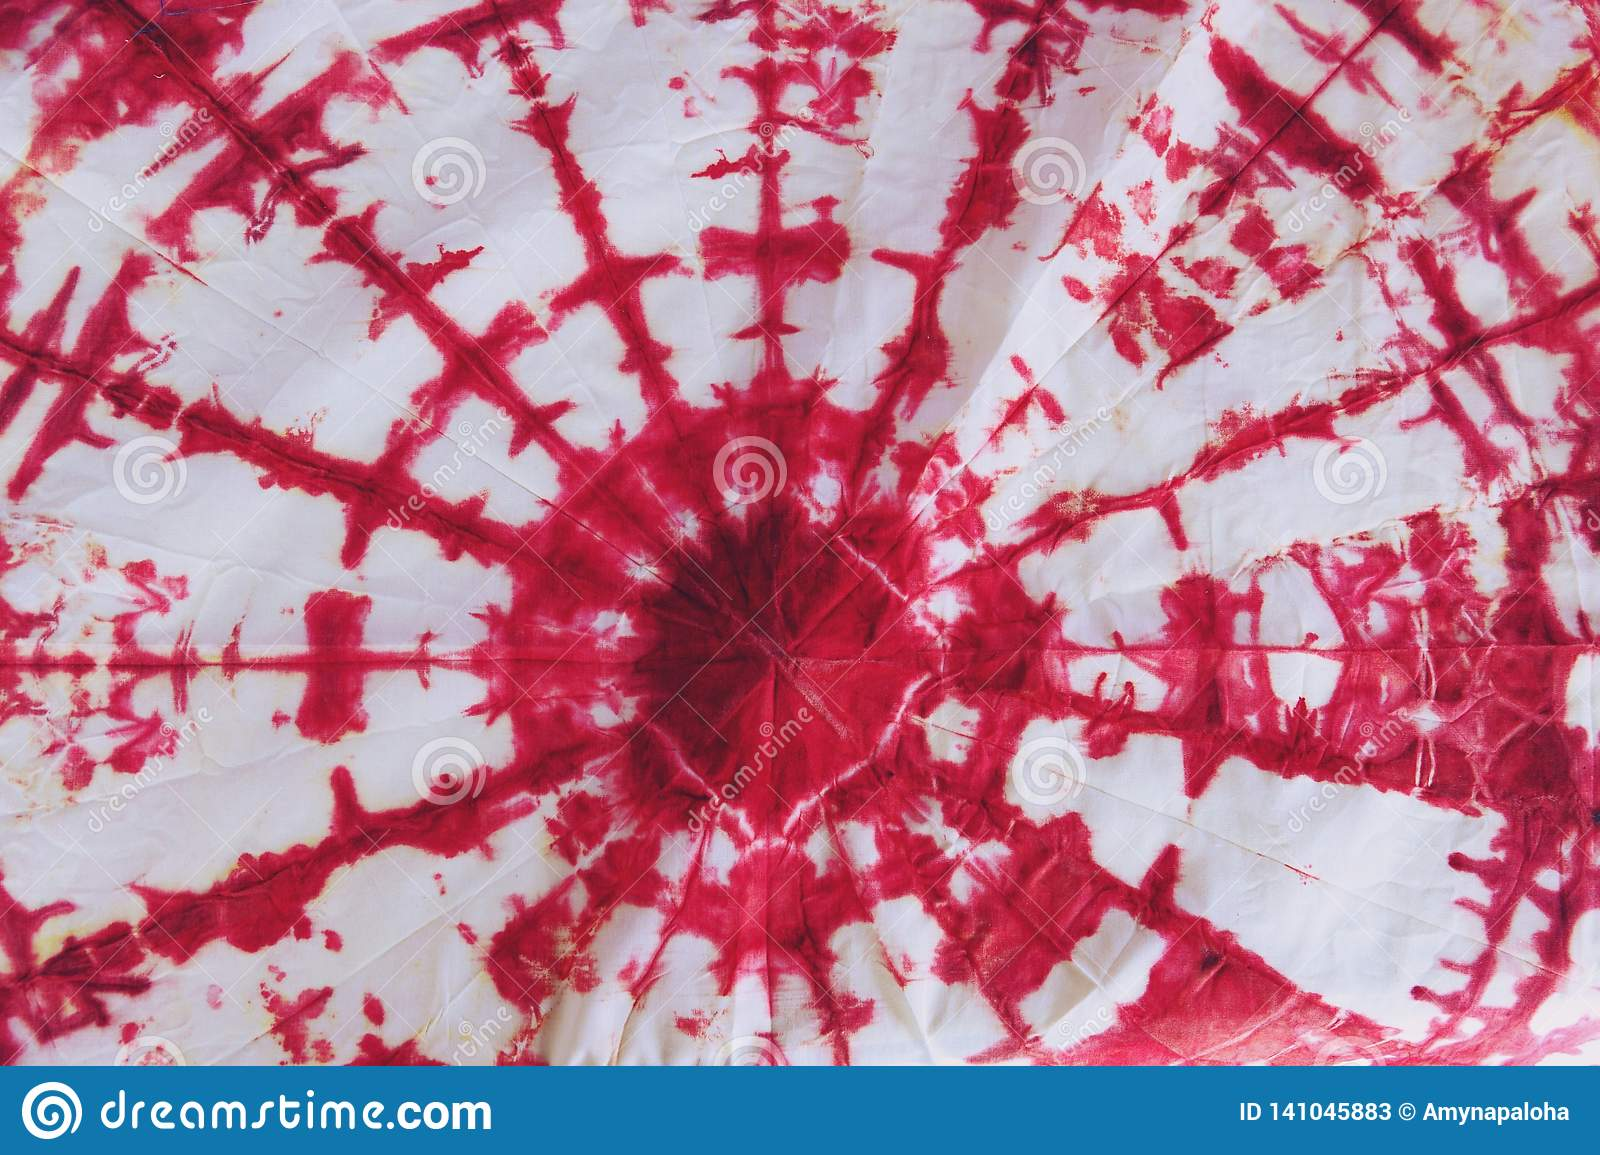 Abstract tie dyed fabric of red color on white cotton